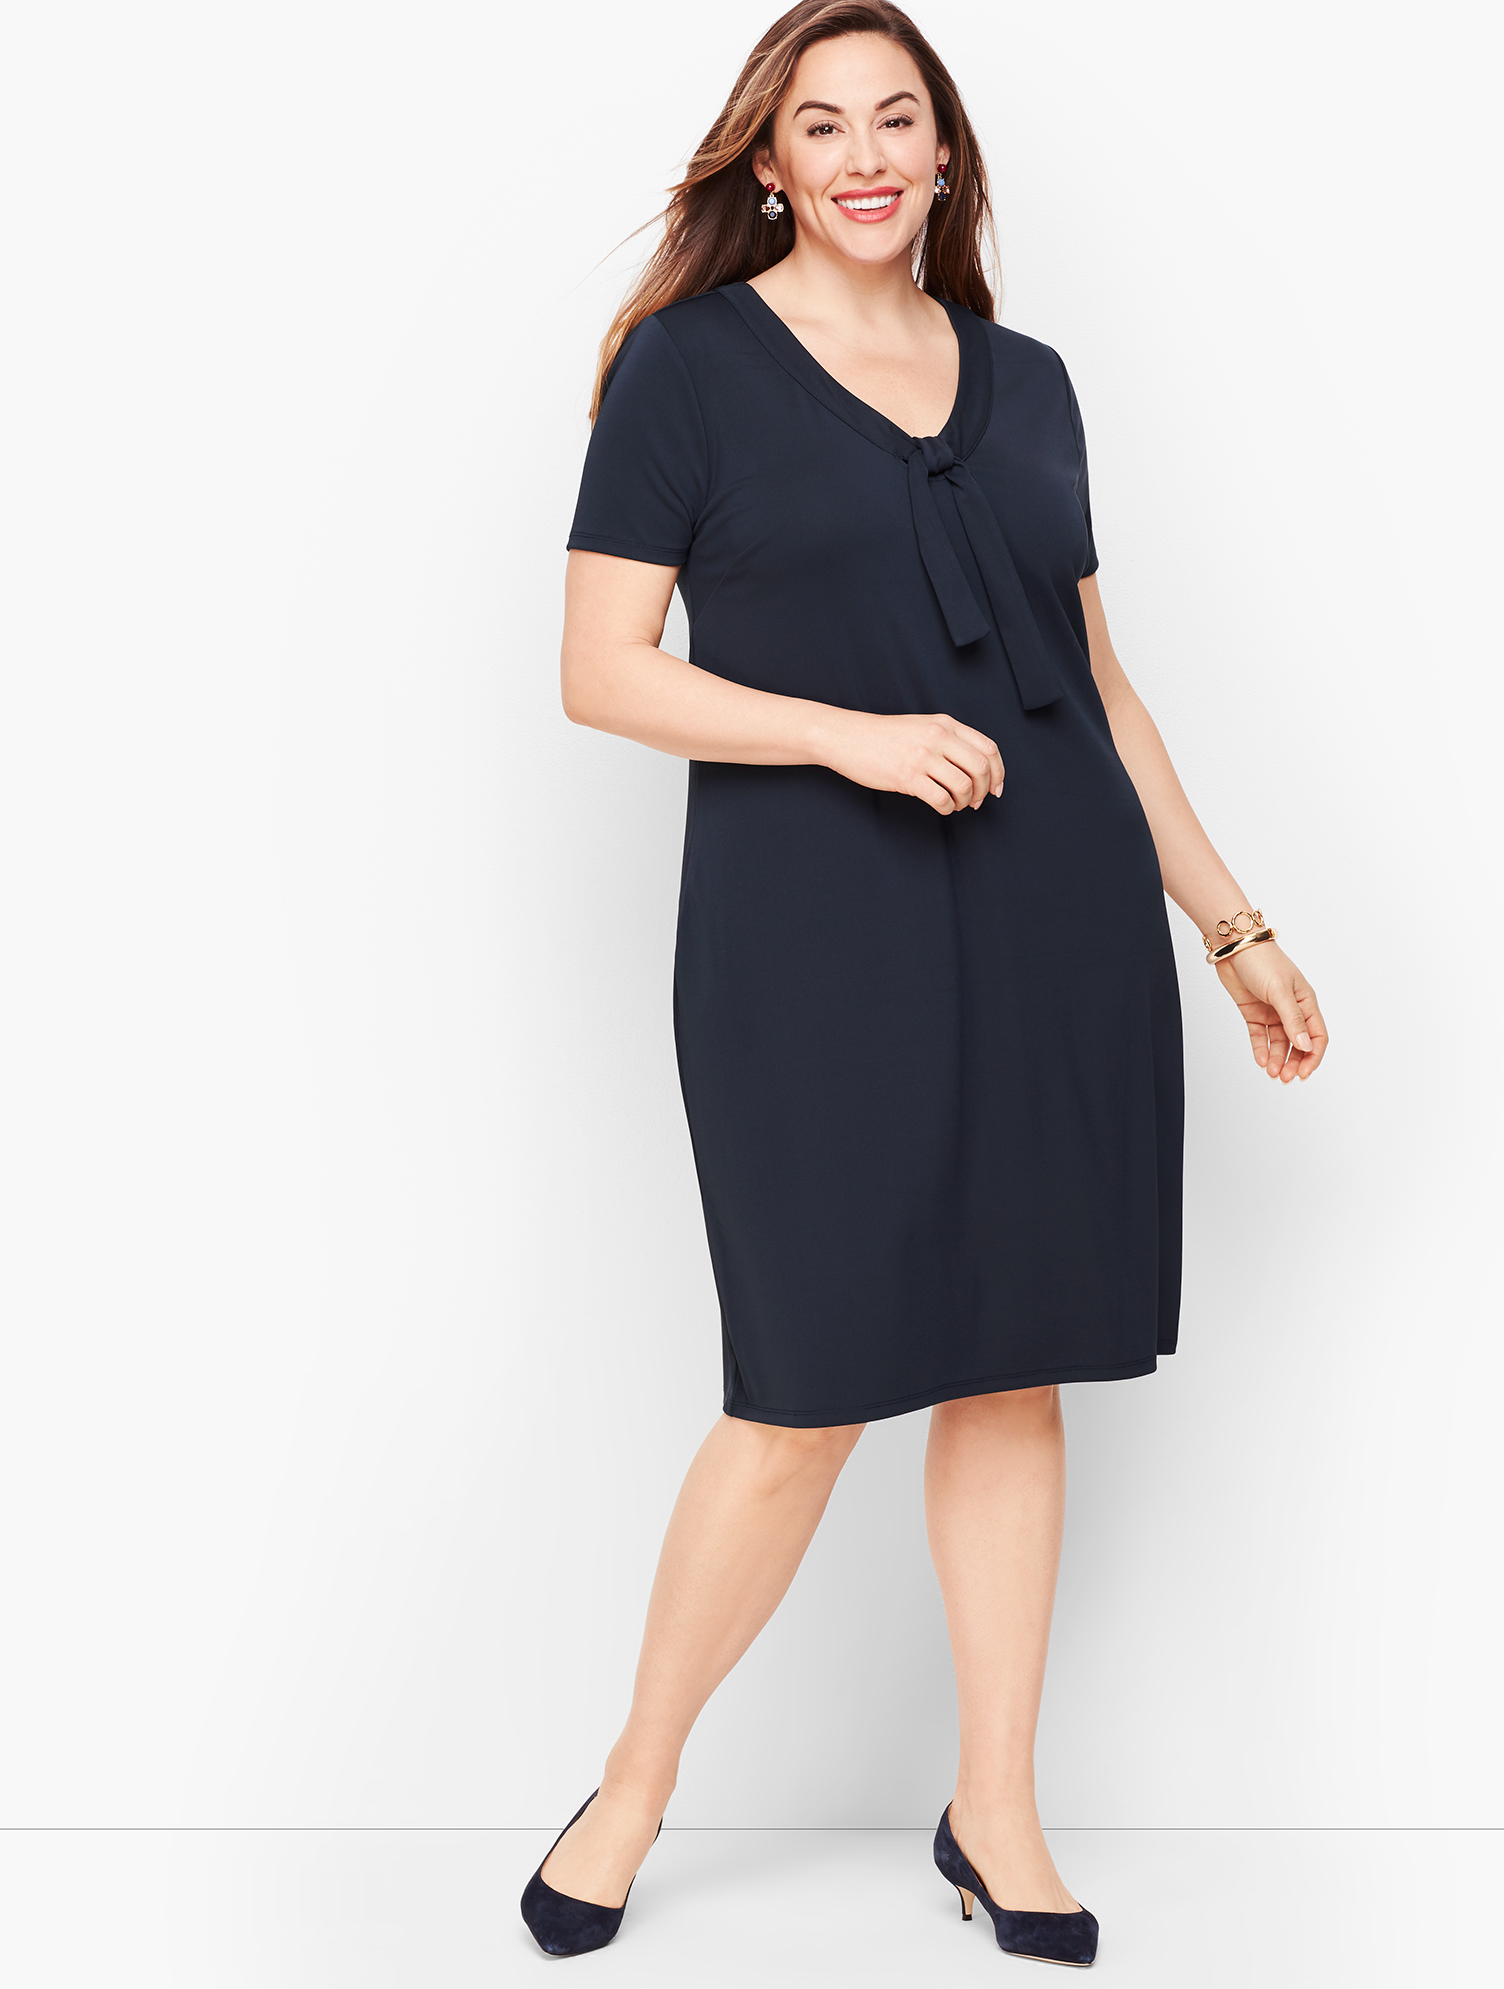 Old Fashioned Dresses | Old Dress Styles Knit Jersey Tie Neck Shift Dress - INDIGO-BLUE - 3X - Talbots $54.99 AT vintagedancer.com